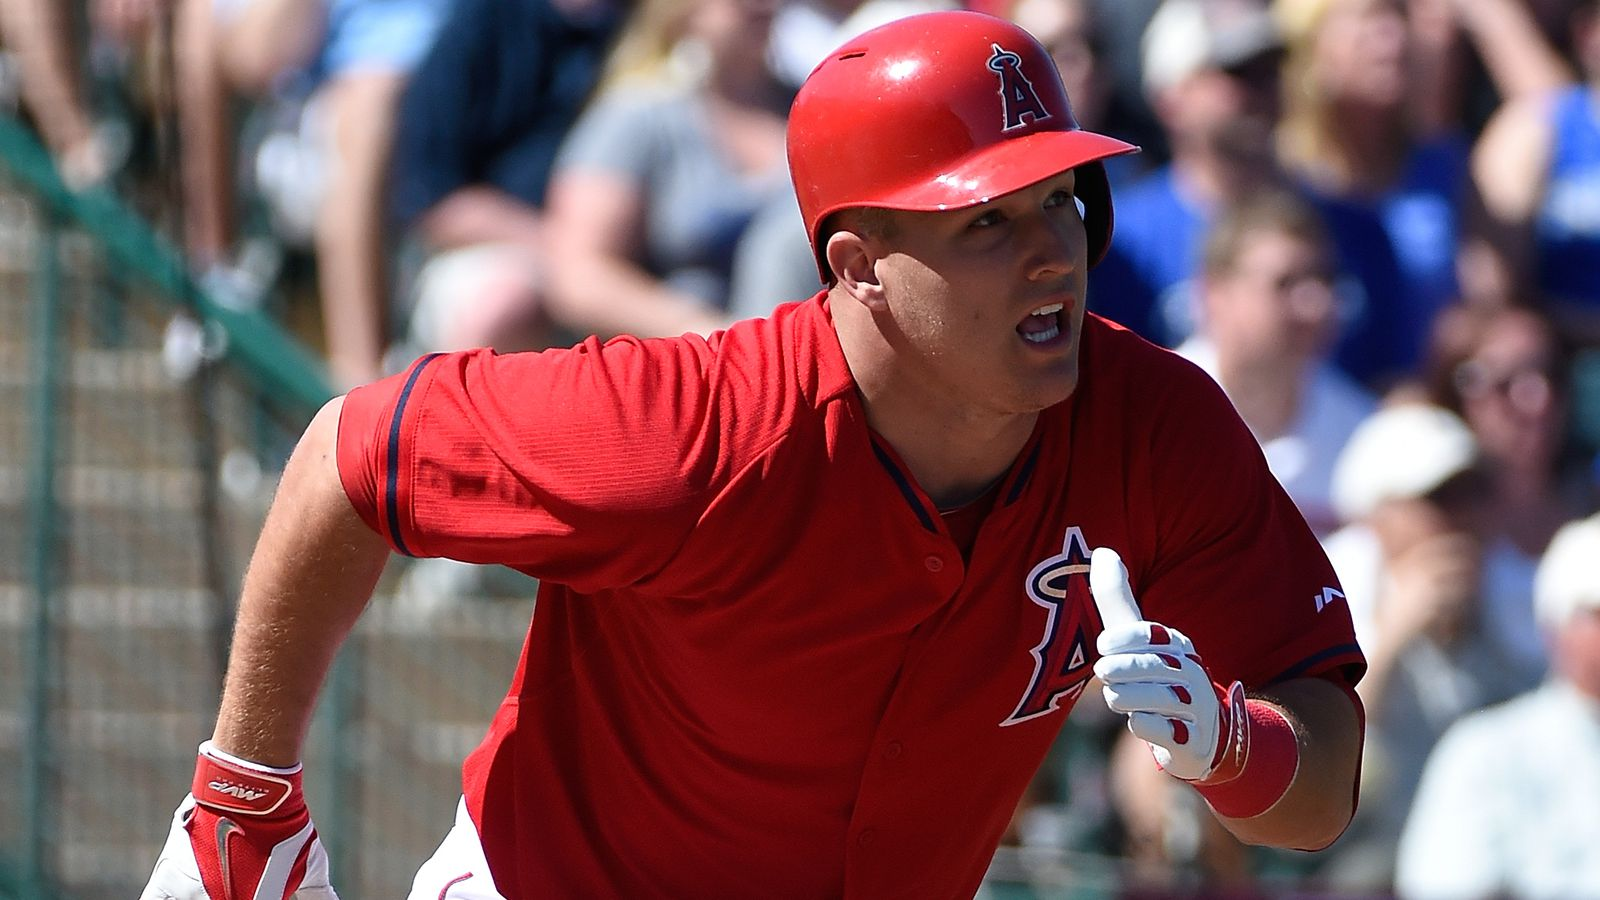 MondoLinks: Opening Day means real Mike Trout!